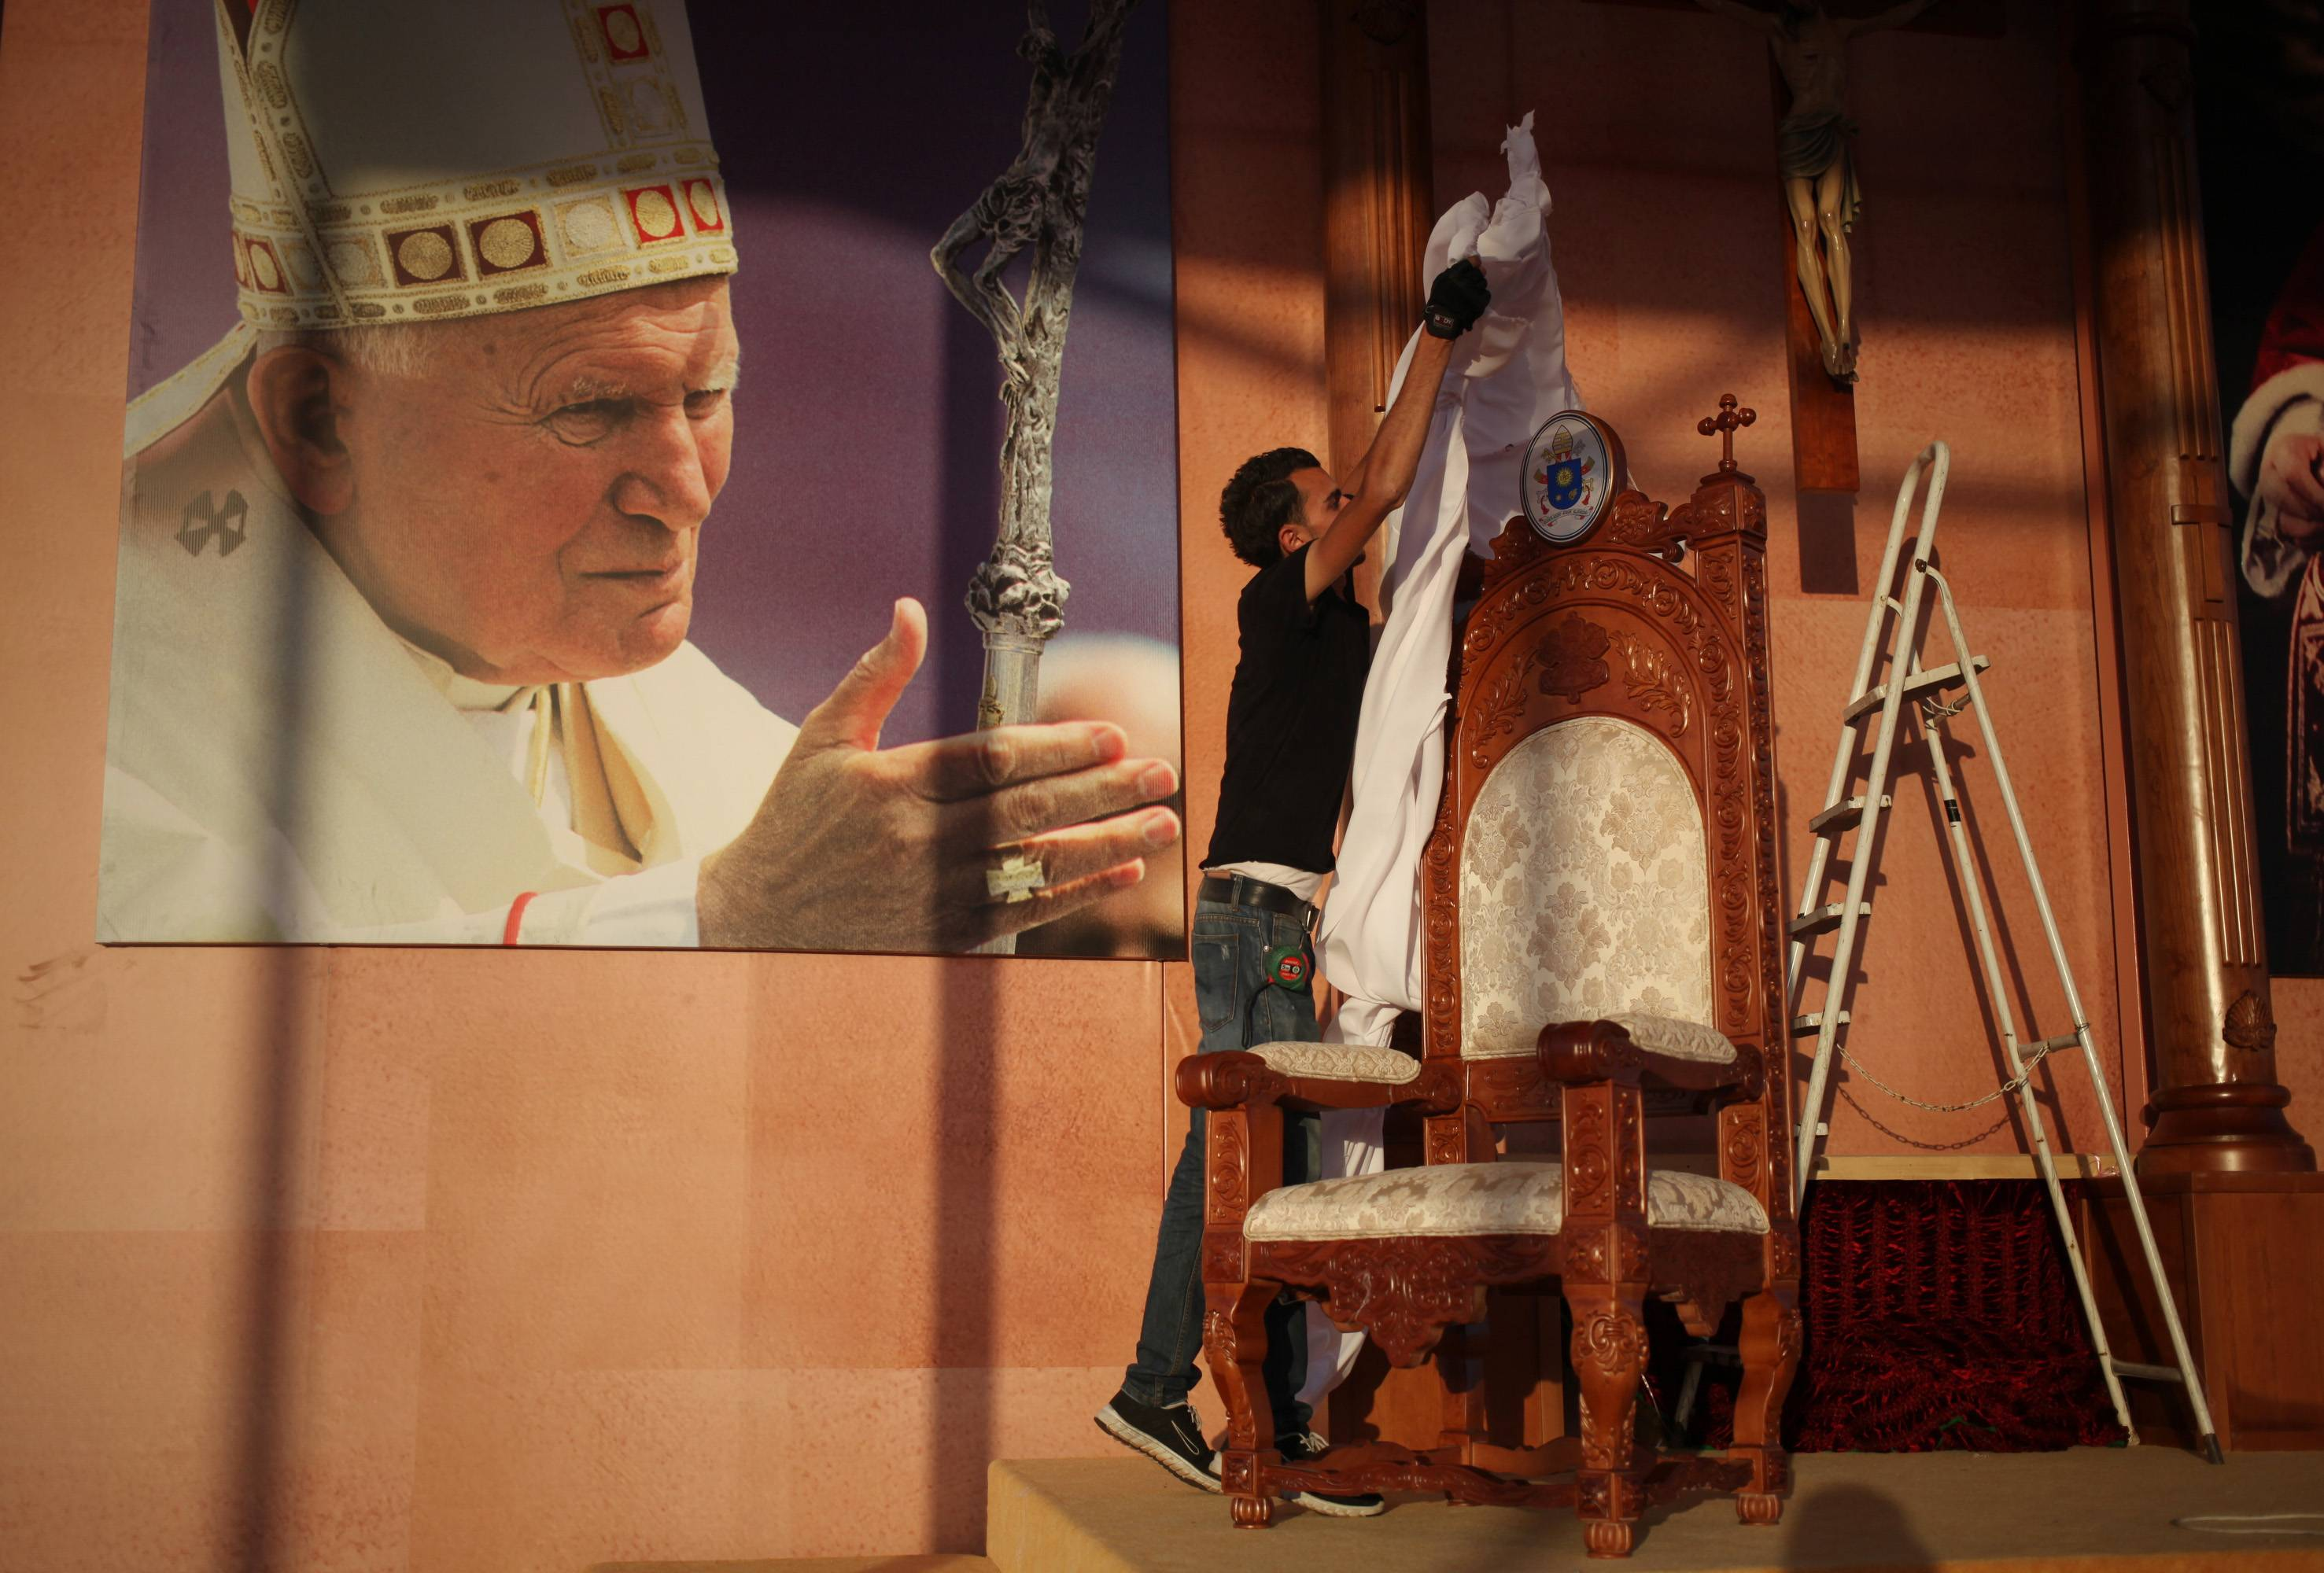 A Jordanian worker covers the chair that will be used by Pope Francis during a mass on Saturday at Amman's International Stadium in Jordan, Thursday, May 22, 2014. The Photo on the wall is of the late Pope John Paul II.